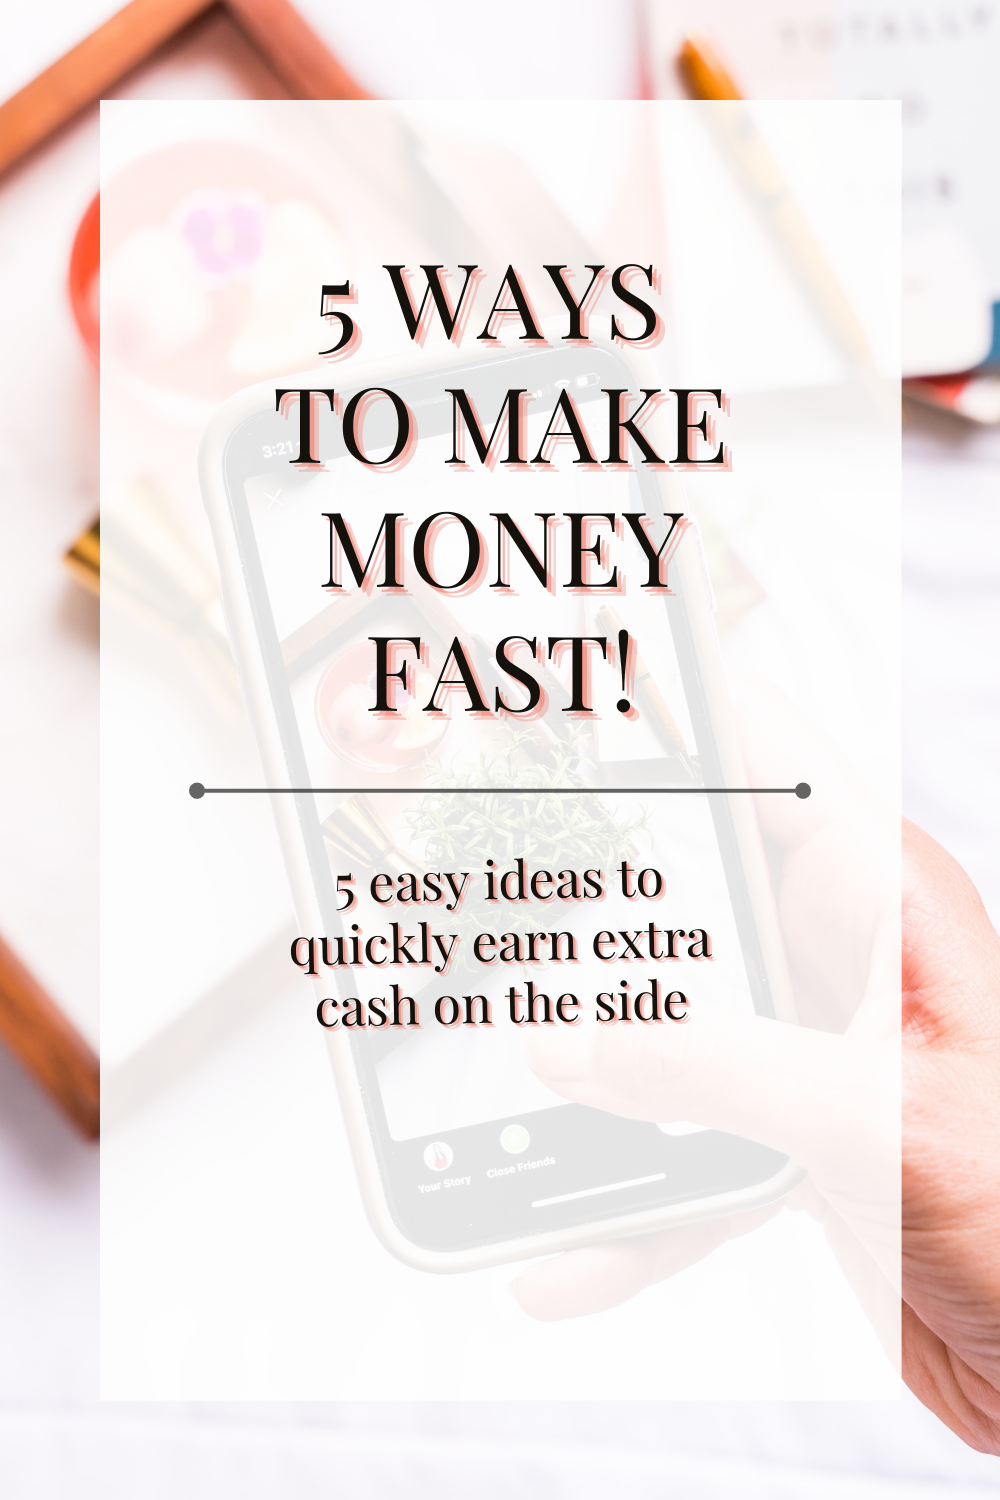 5 ways to make money fast